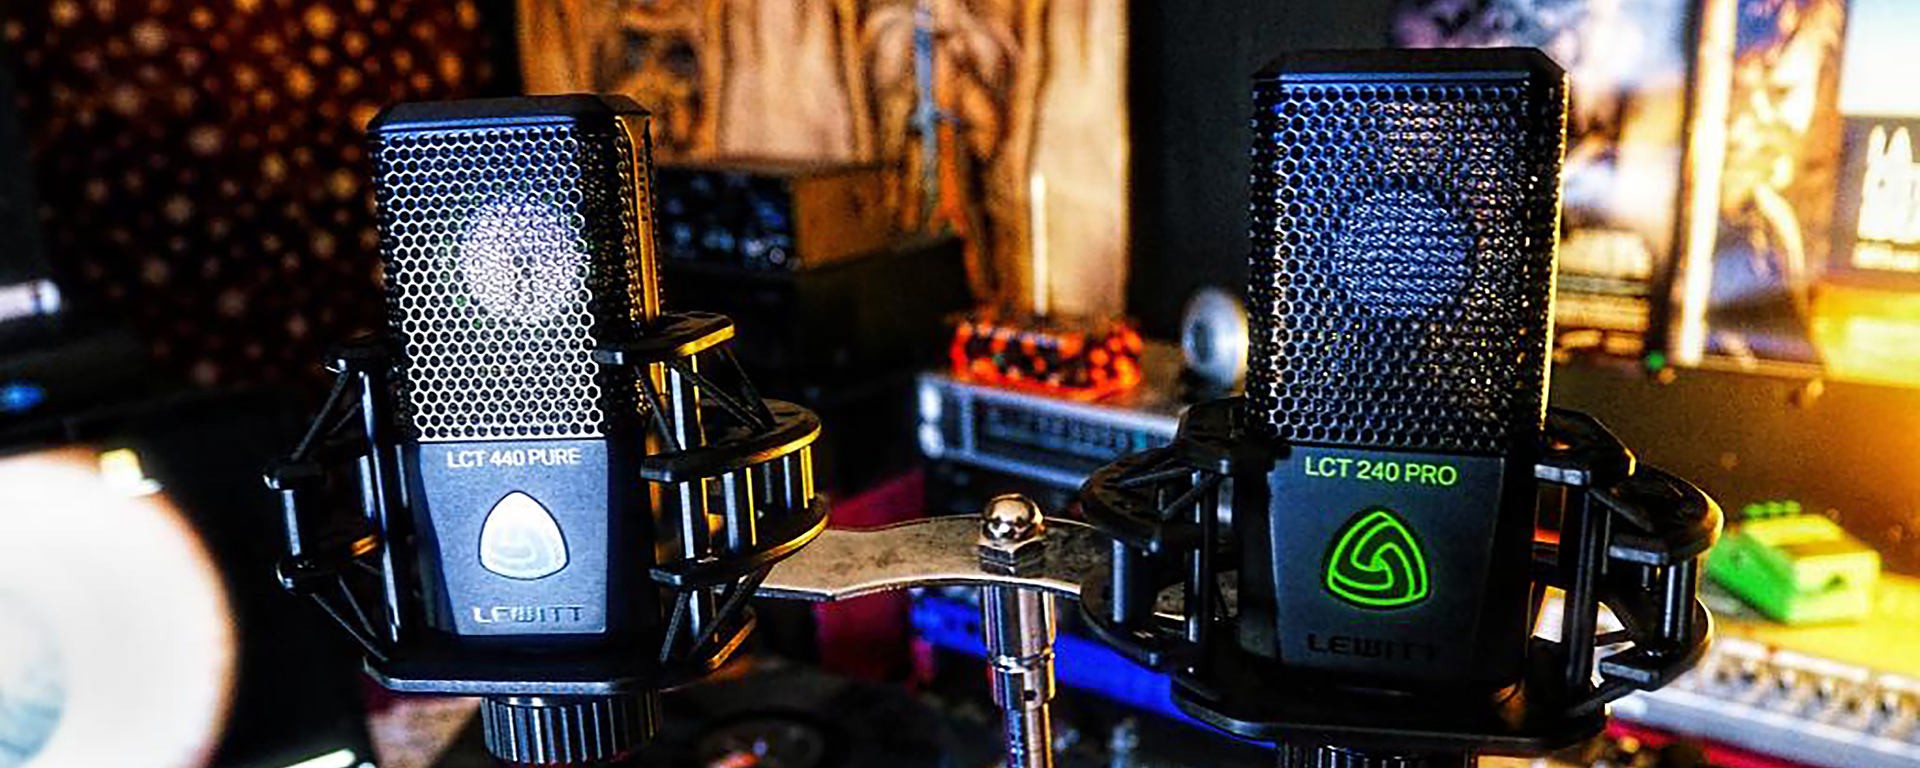 LCT 240 PRO best condenser mic for the money LCT 440 PURE best condenser microphone for small budget [Photo: ©Andrea Rocca]